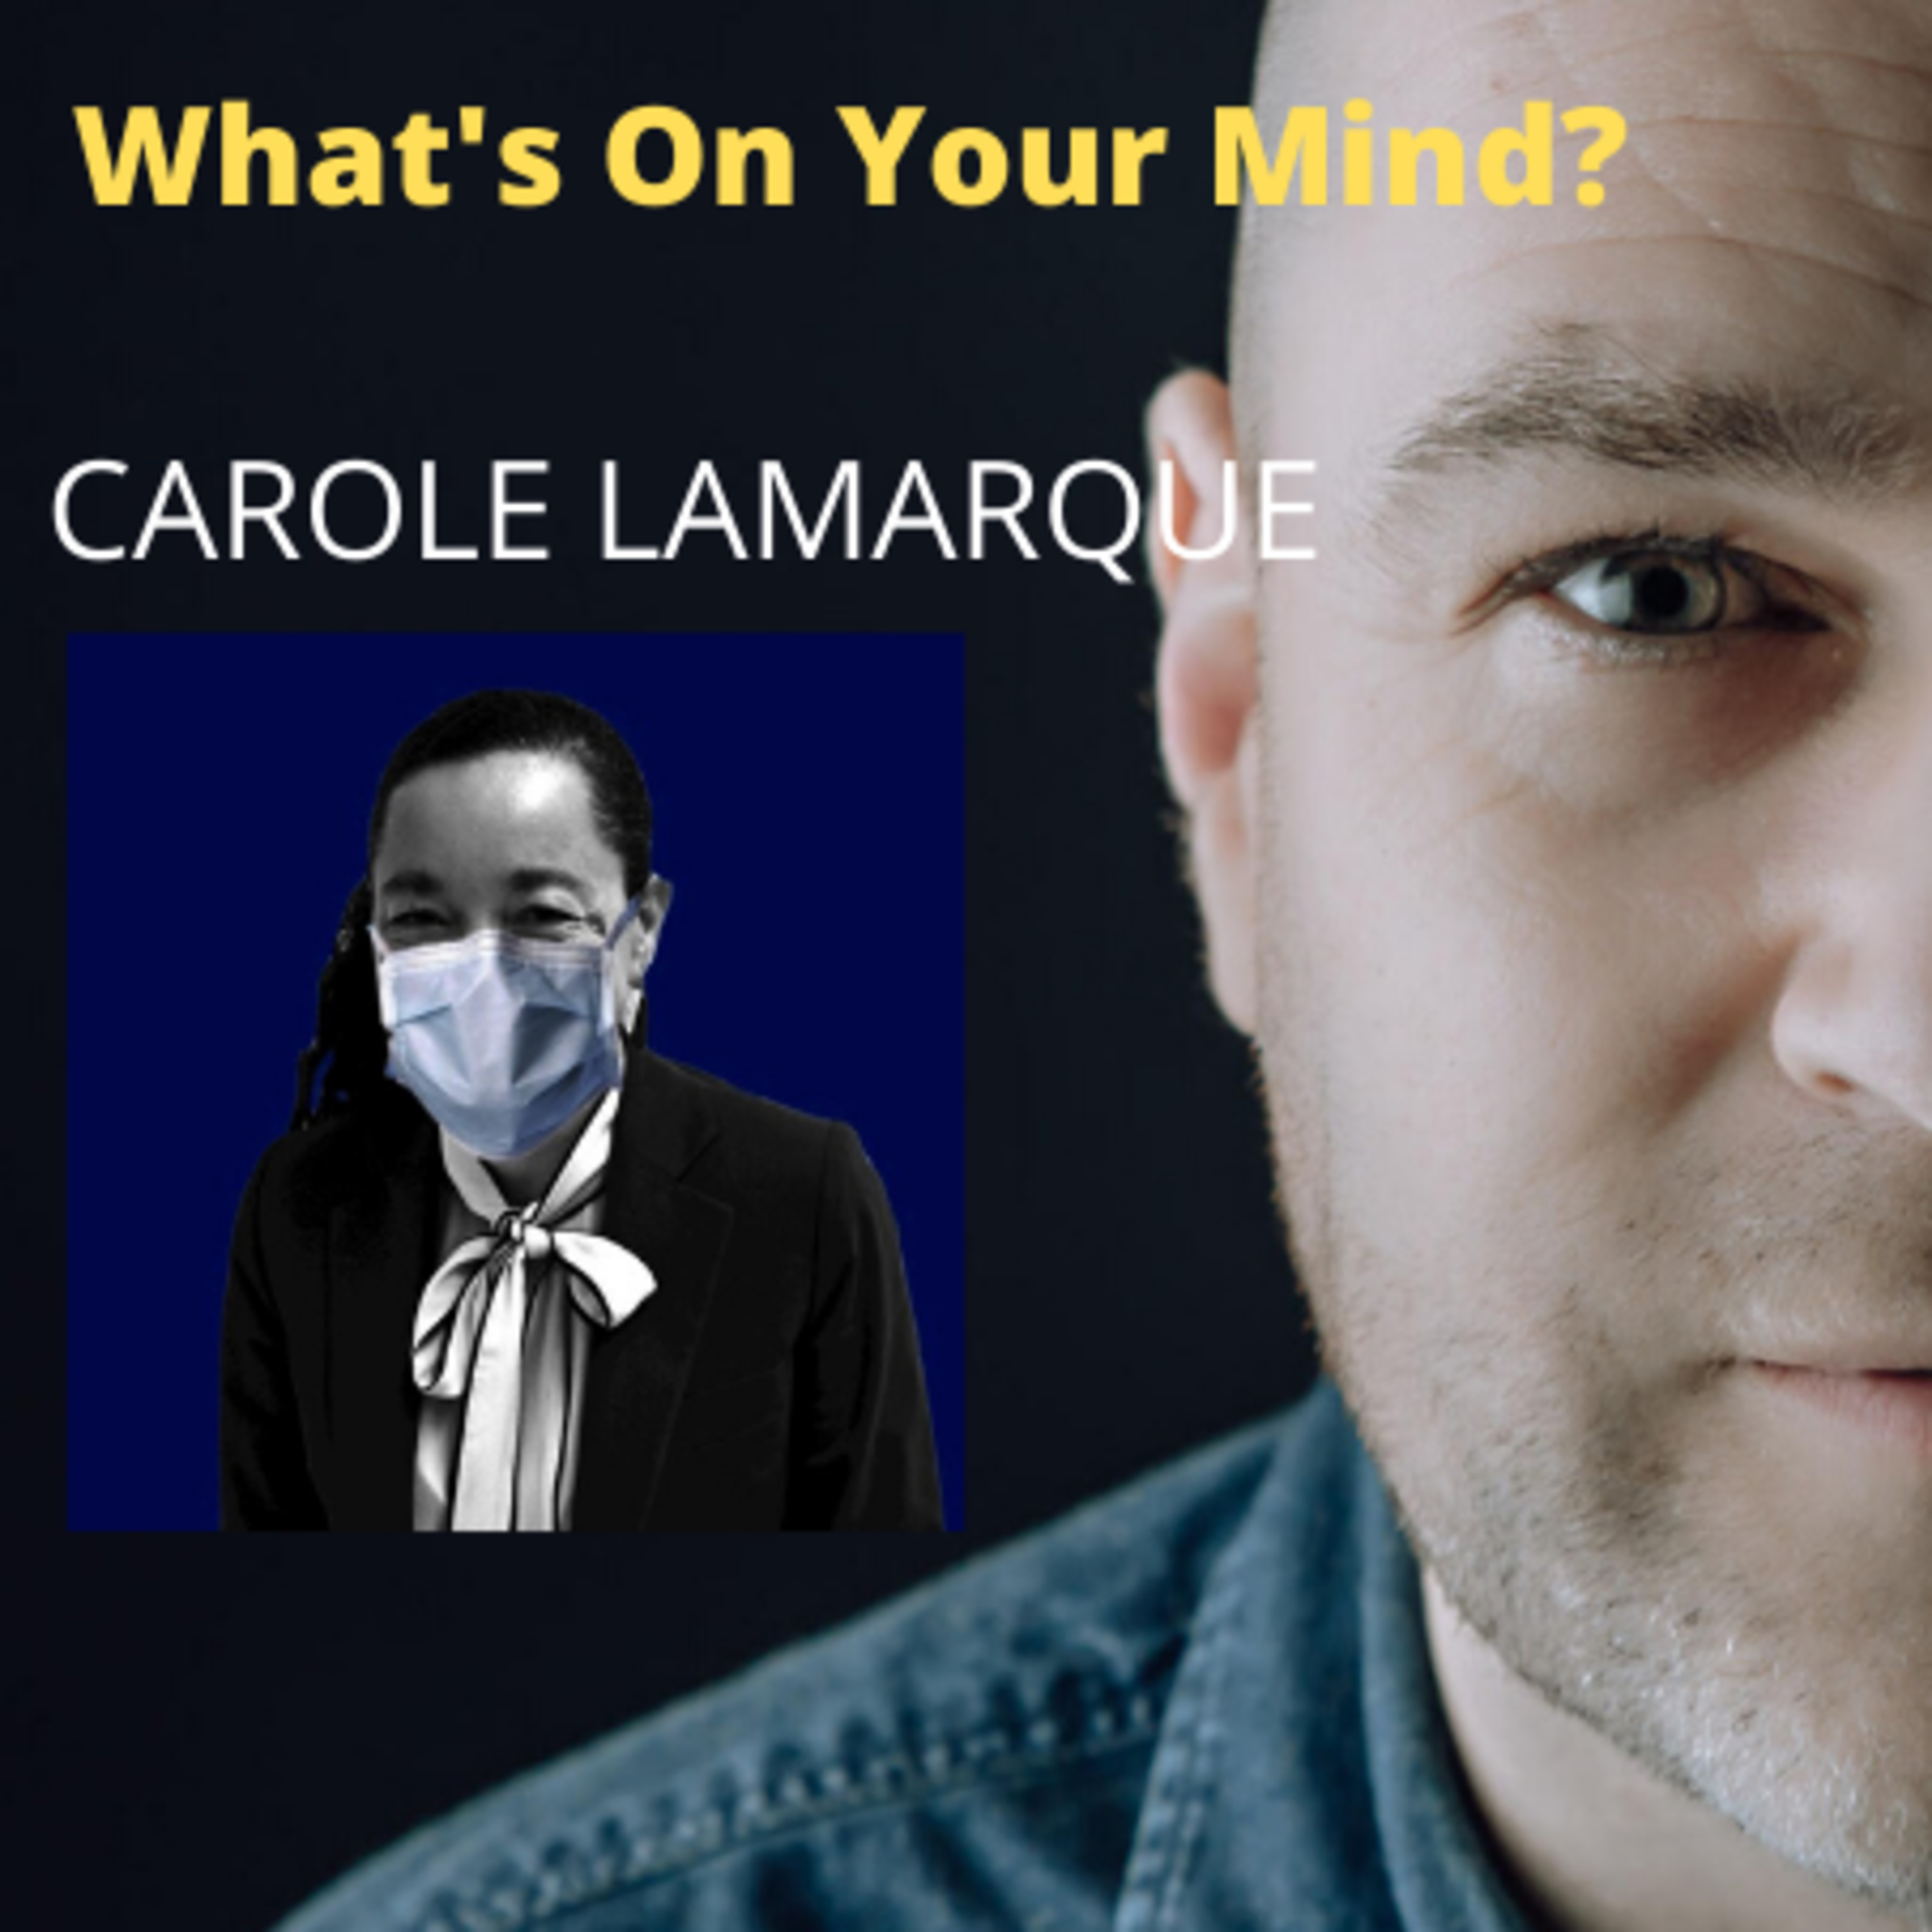 What's On Your Mind 8: Carole Lamarque